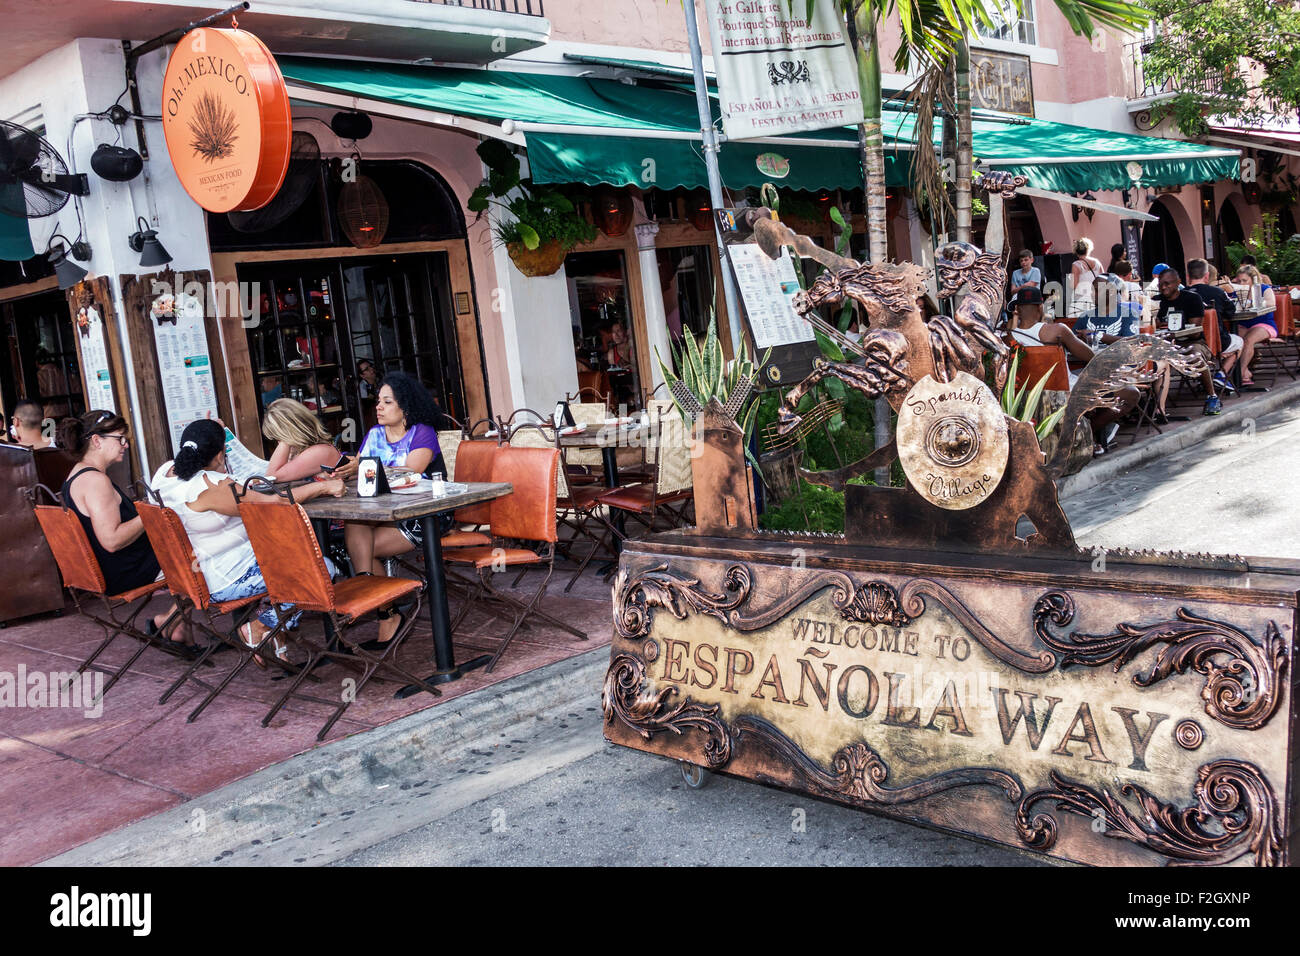 Mexican Restaurant In Espanola Way